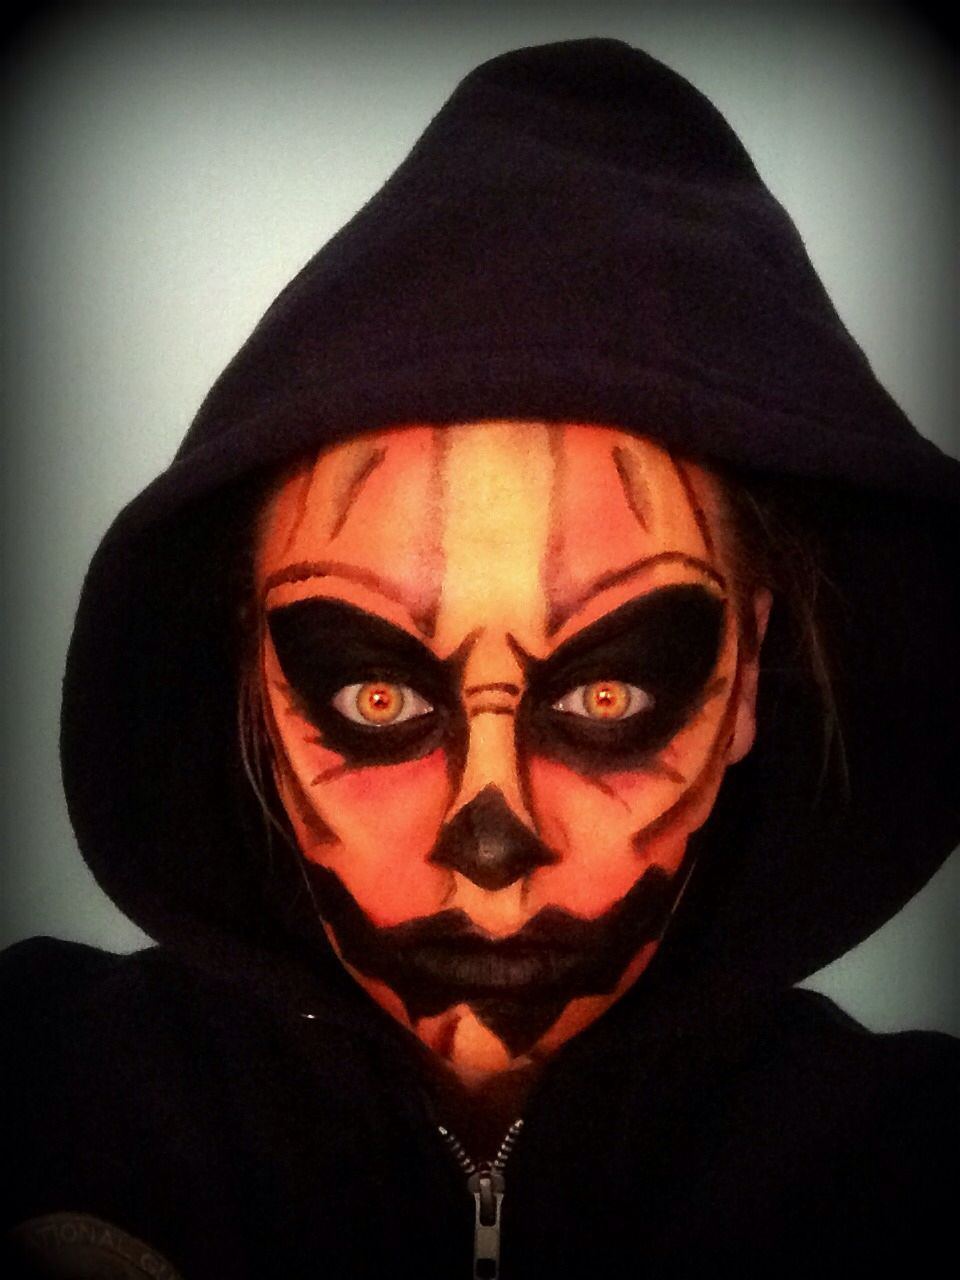 Pumpkin Face Halloween makeup Halloween makeup scary